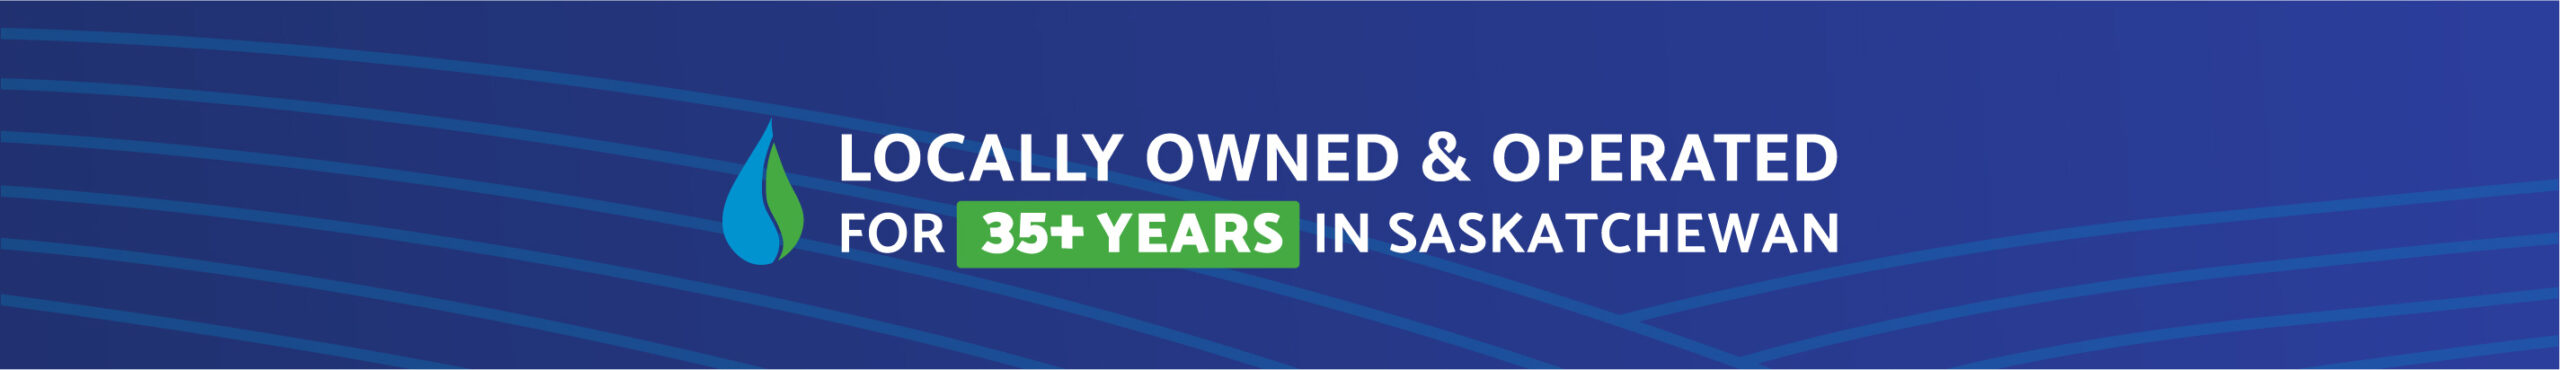 Locally Owned & Operated for 35+ Years in Saskatchewan